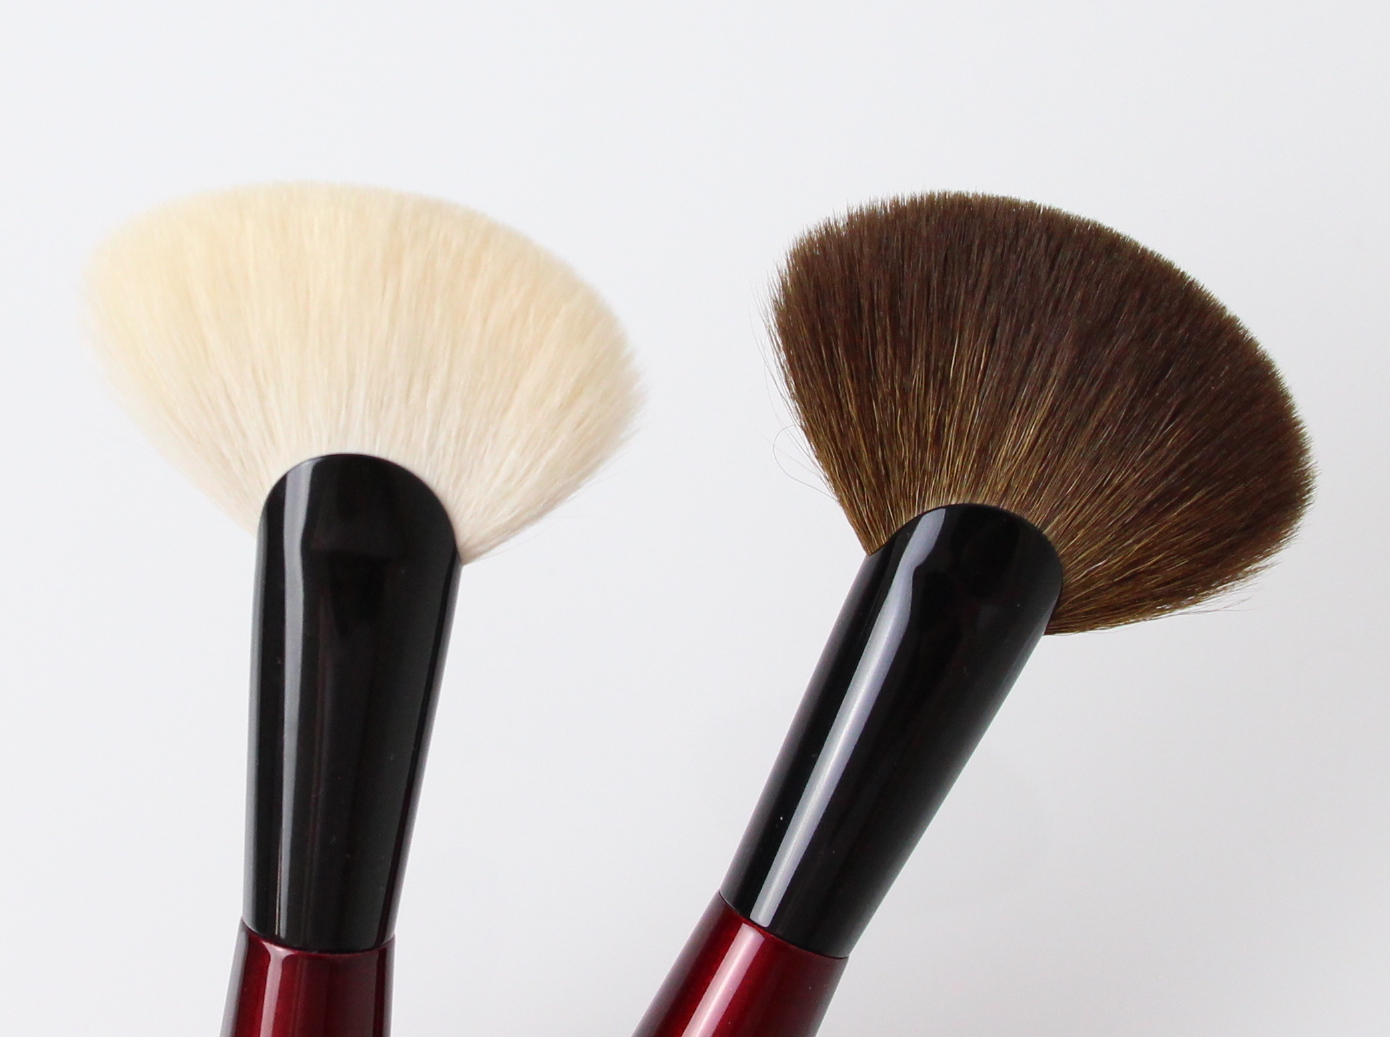 Sonia G Sculpt Four (left) and Sculpt Two (right) Brushes comparison